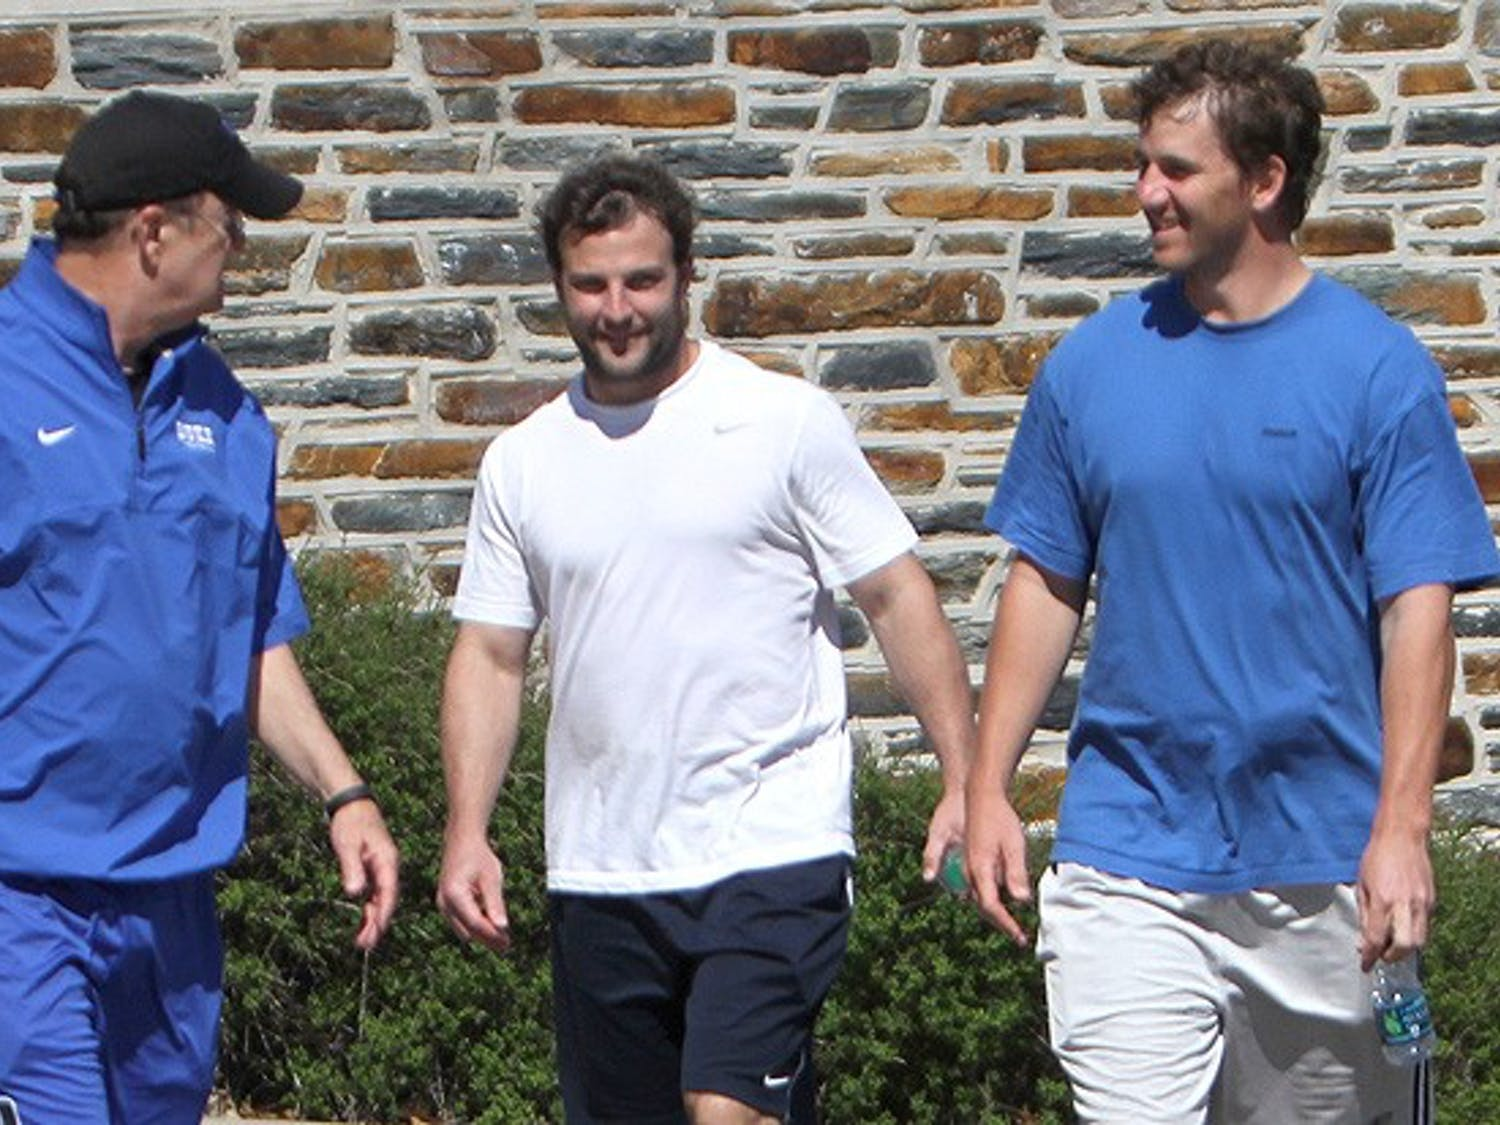 NFL stars Eli Manning and Wes Welker walk with Duke head coach David Cutcliffe outside the Yoh Football Center. Peyton Manning was close behind.